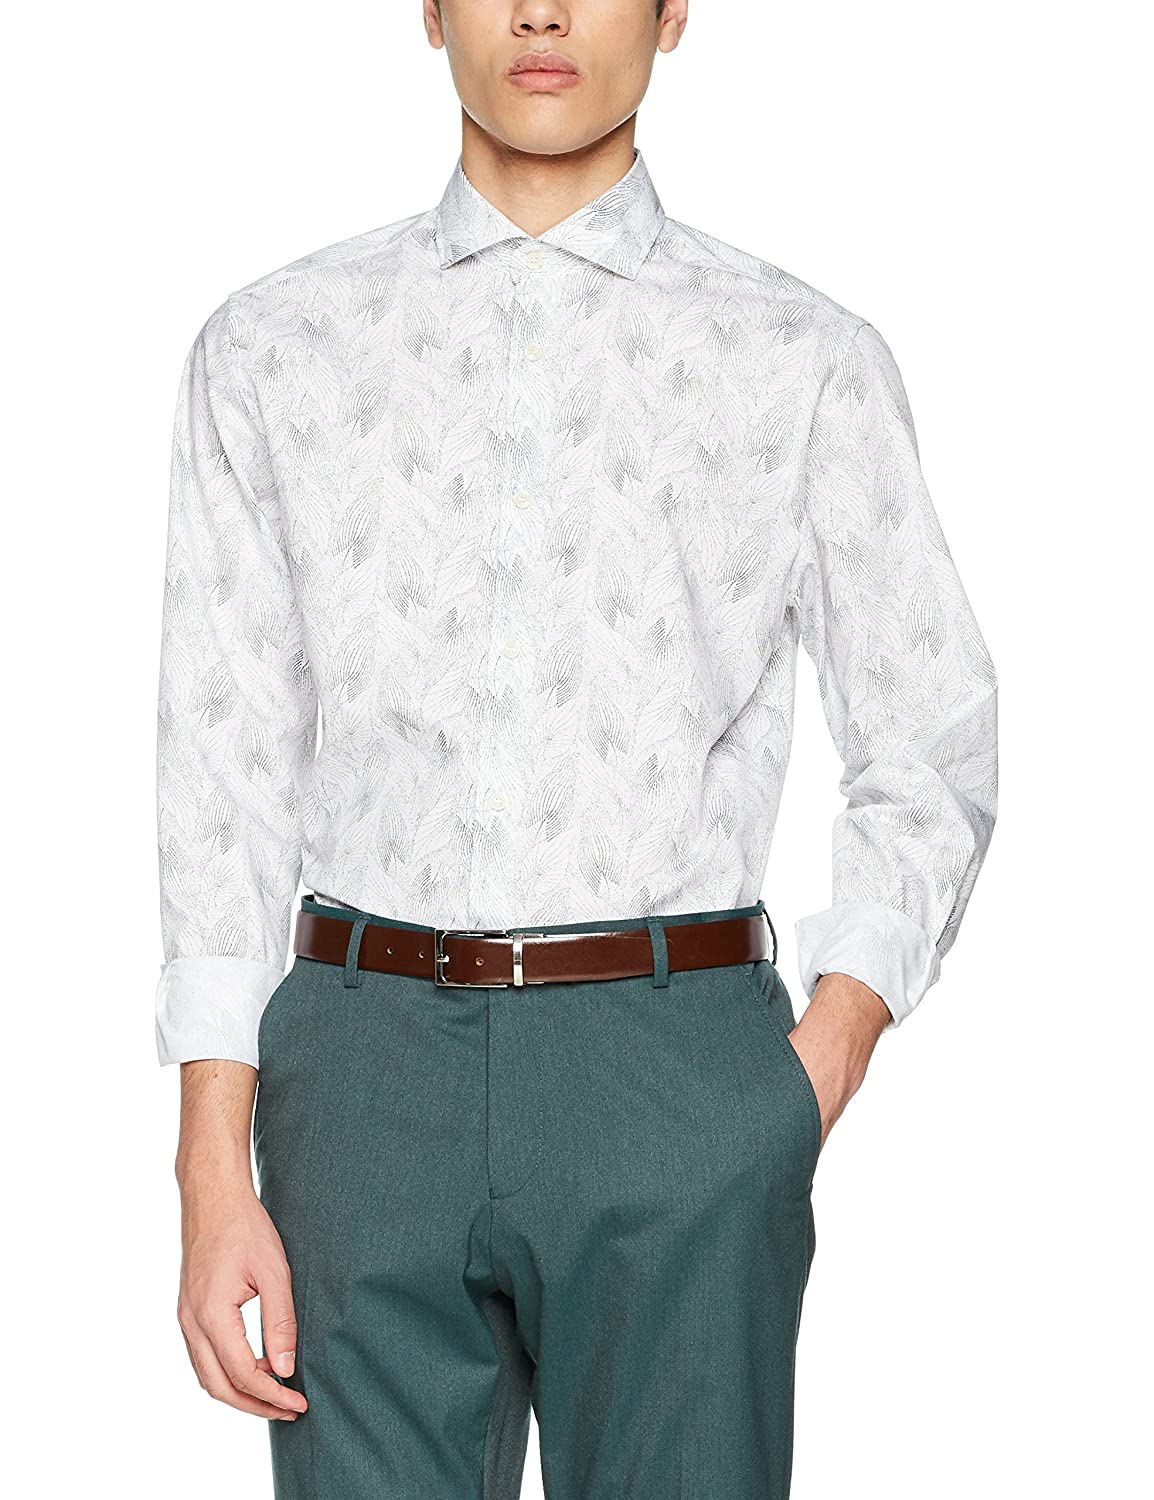 TALLA (Talla del fabricante: X-Large). SELECTED HOMME Shdtwosel-Wave Shirt LS AOP STS, Camisa para Hombre